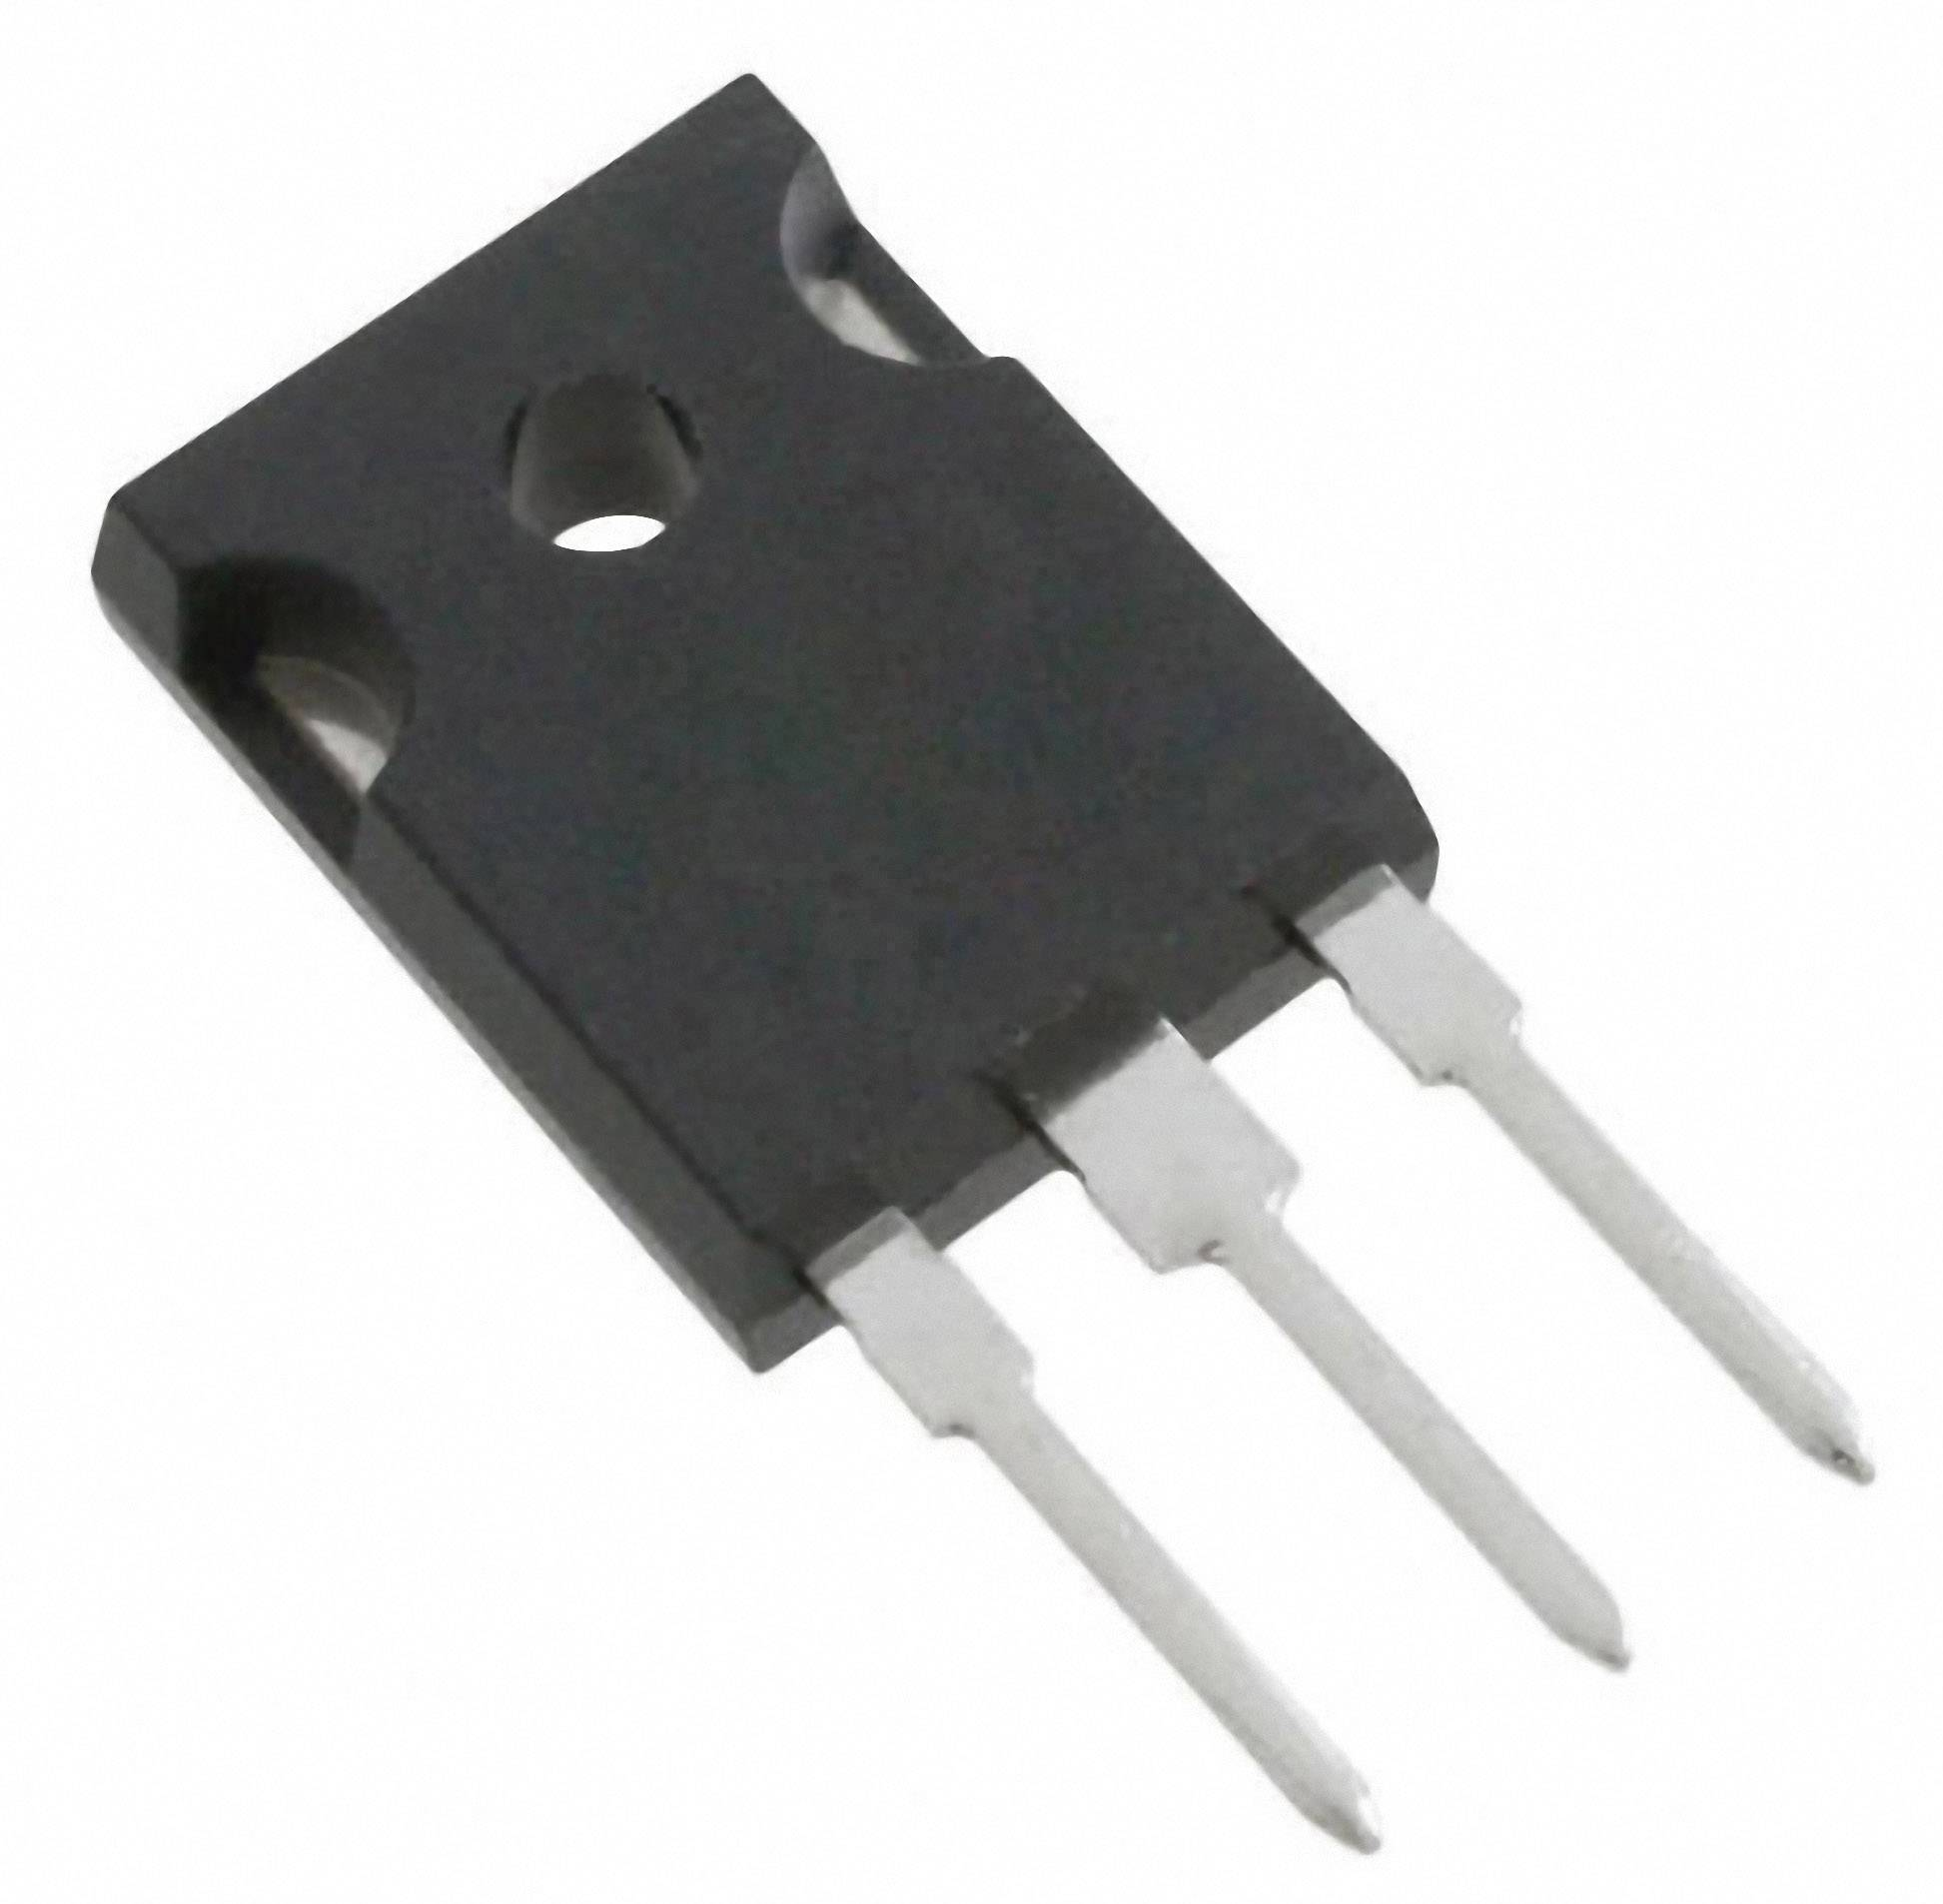 MOSFET Fairchild Semiconductor N kanál N-CH 100V HUF75652G3 TO-247-3 FSC